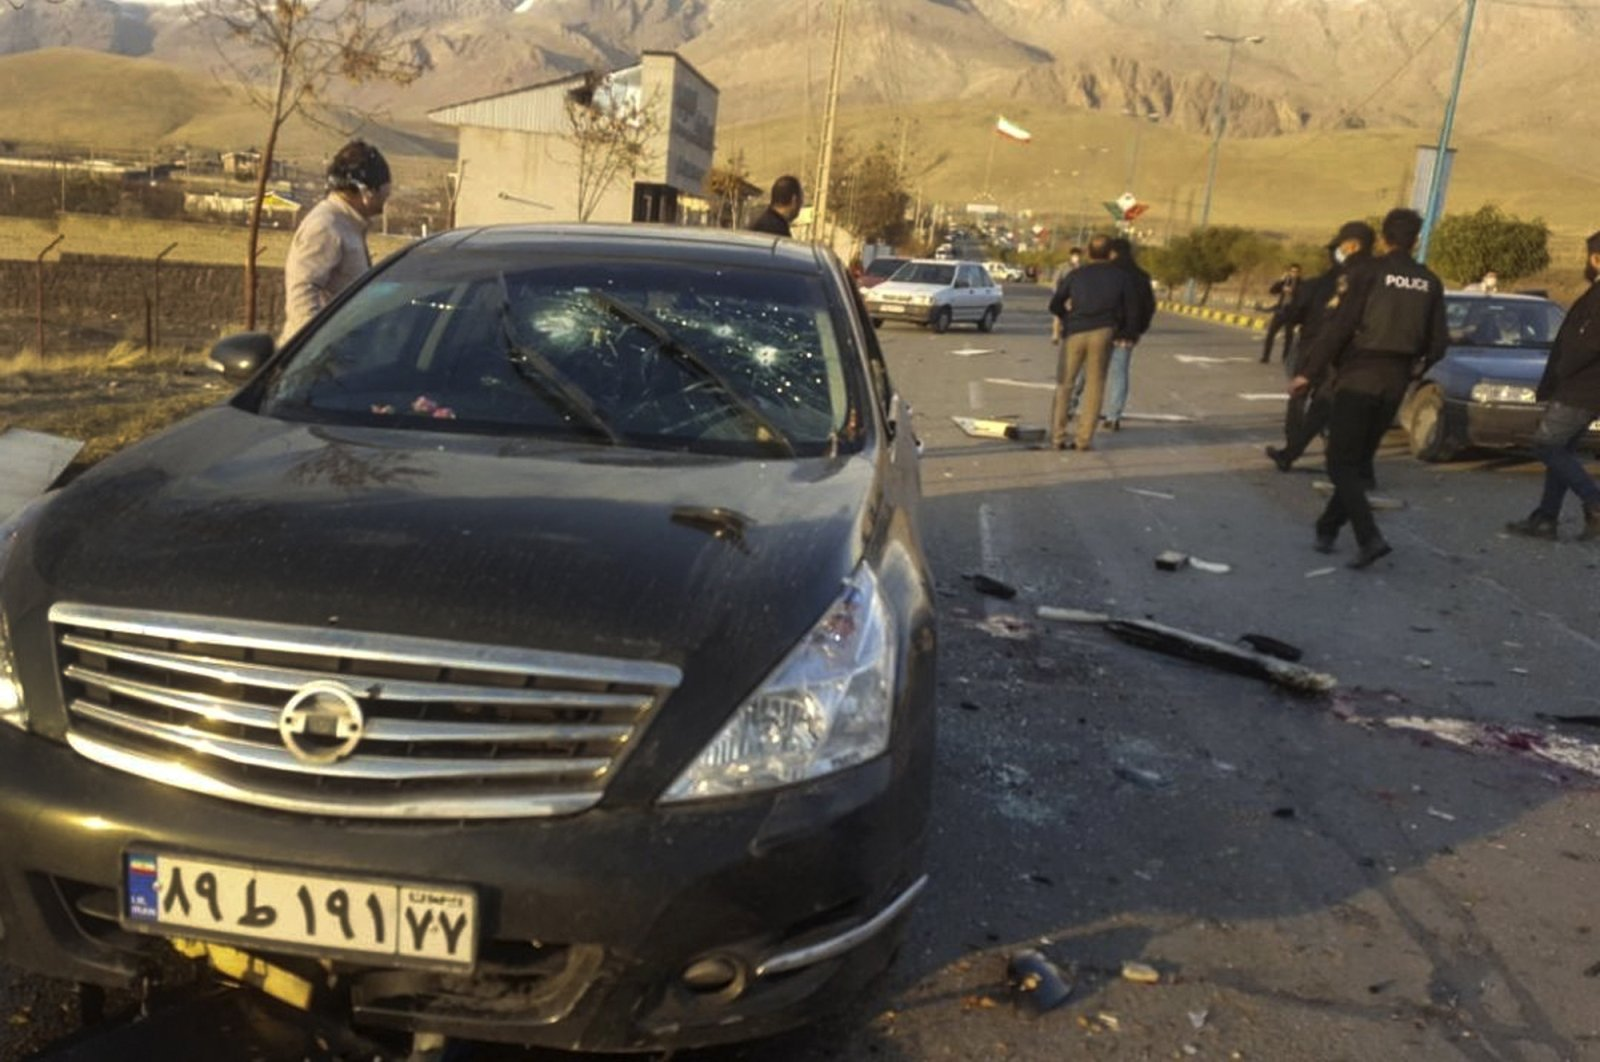 This photo released by the semi-official Fars News Agency shows the scene where Mohsen Fakhrizadeh was killed in Absard, a small city just east of the capital, Tehran, Iran, Friday, Nov. 27, 2020. (AP Photo)